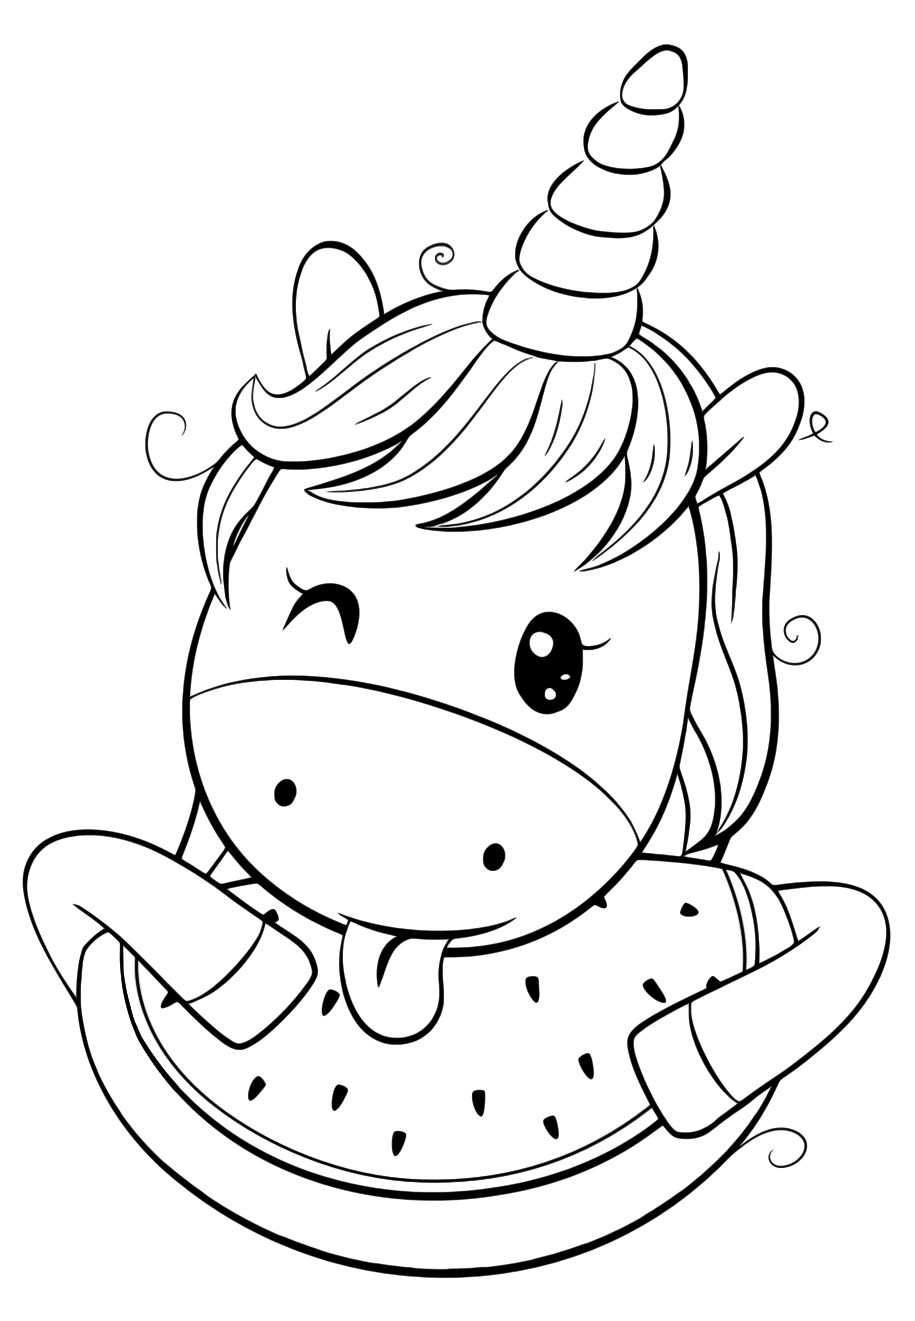 coloring pictures of unicorn unicorn coloring pages for adults best coloring pages of unicorn pictures coloring